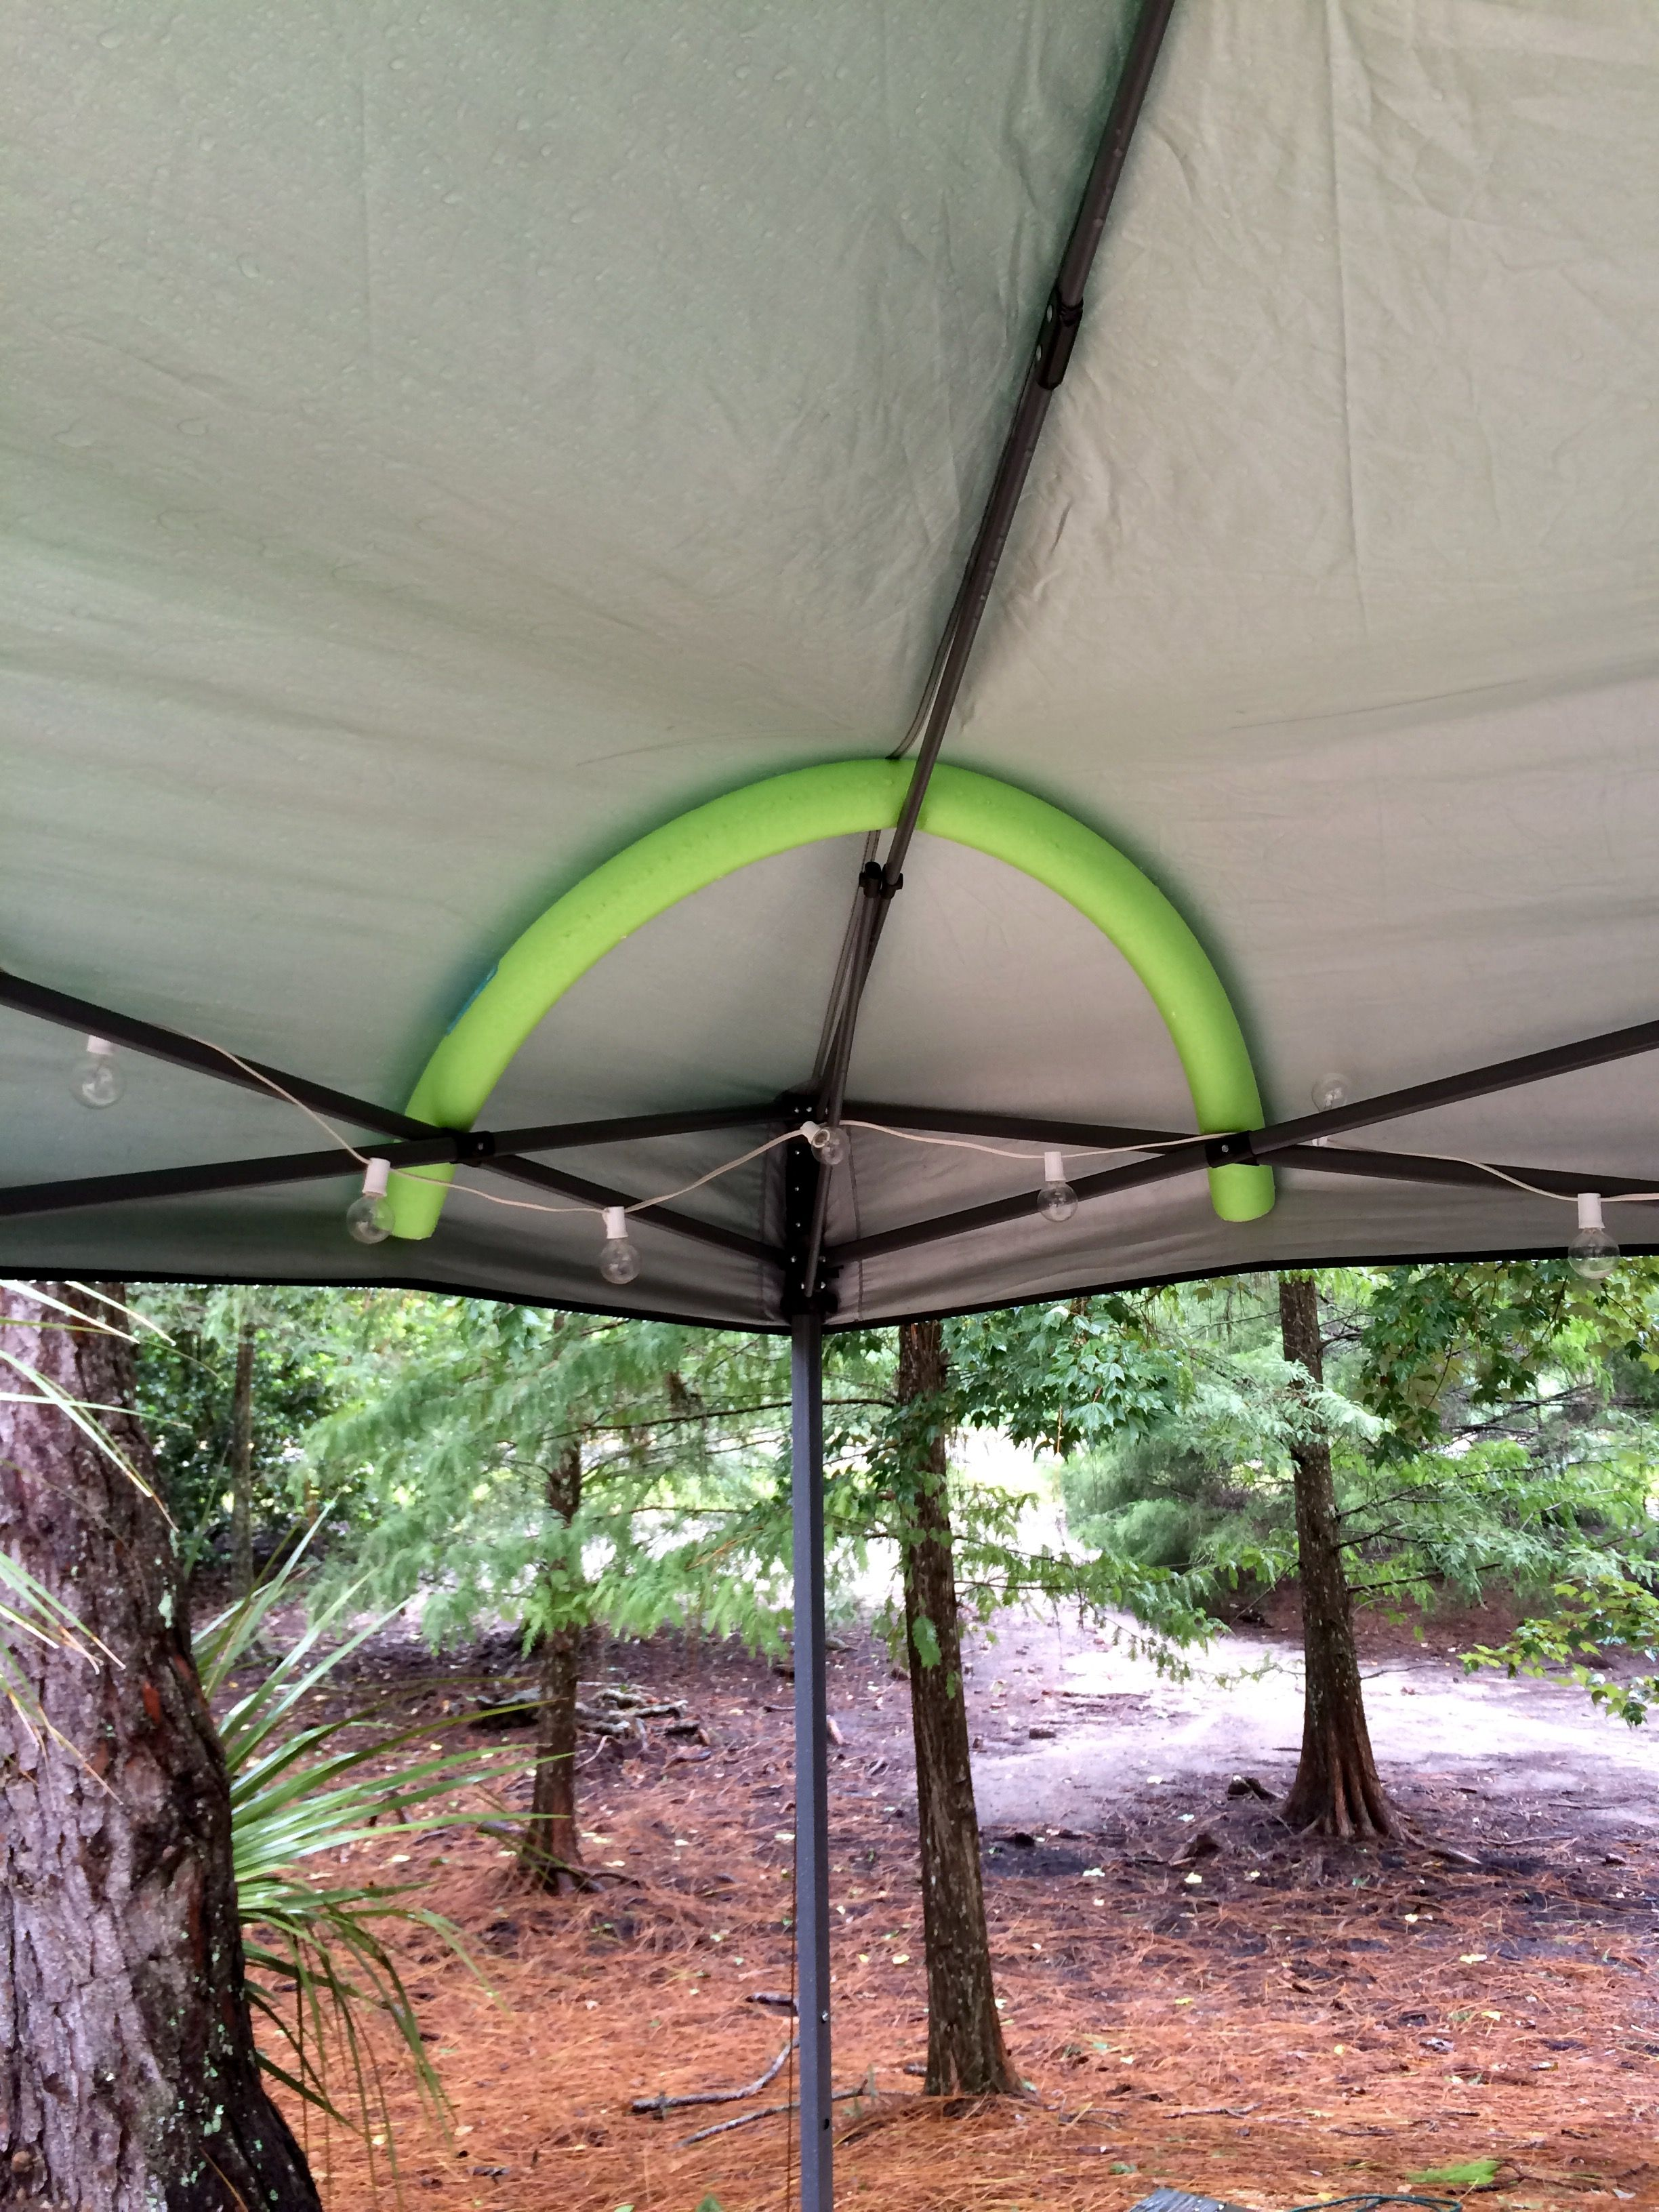 Works great for easy up tents when\u2026 & The best pool noodle idea ever!!! Works great for easy up tents when ...